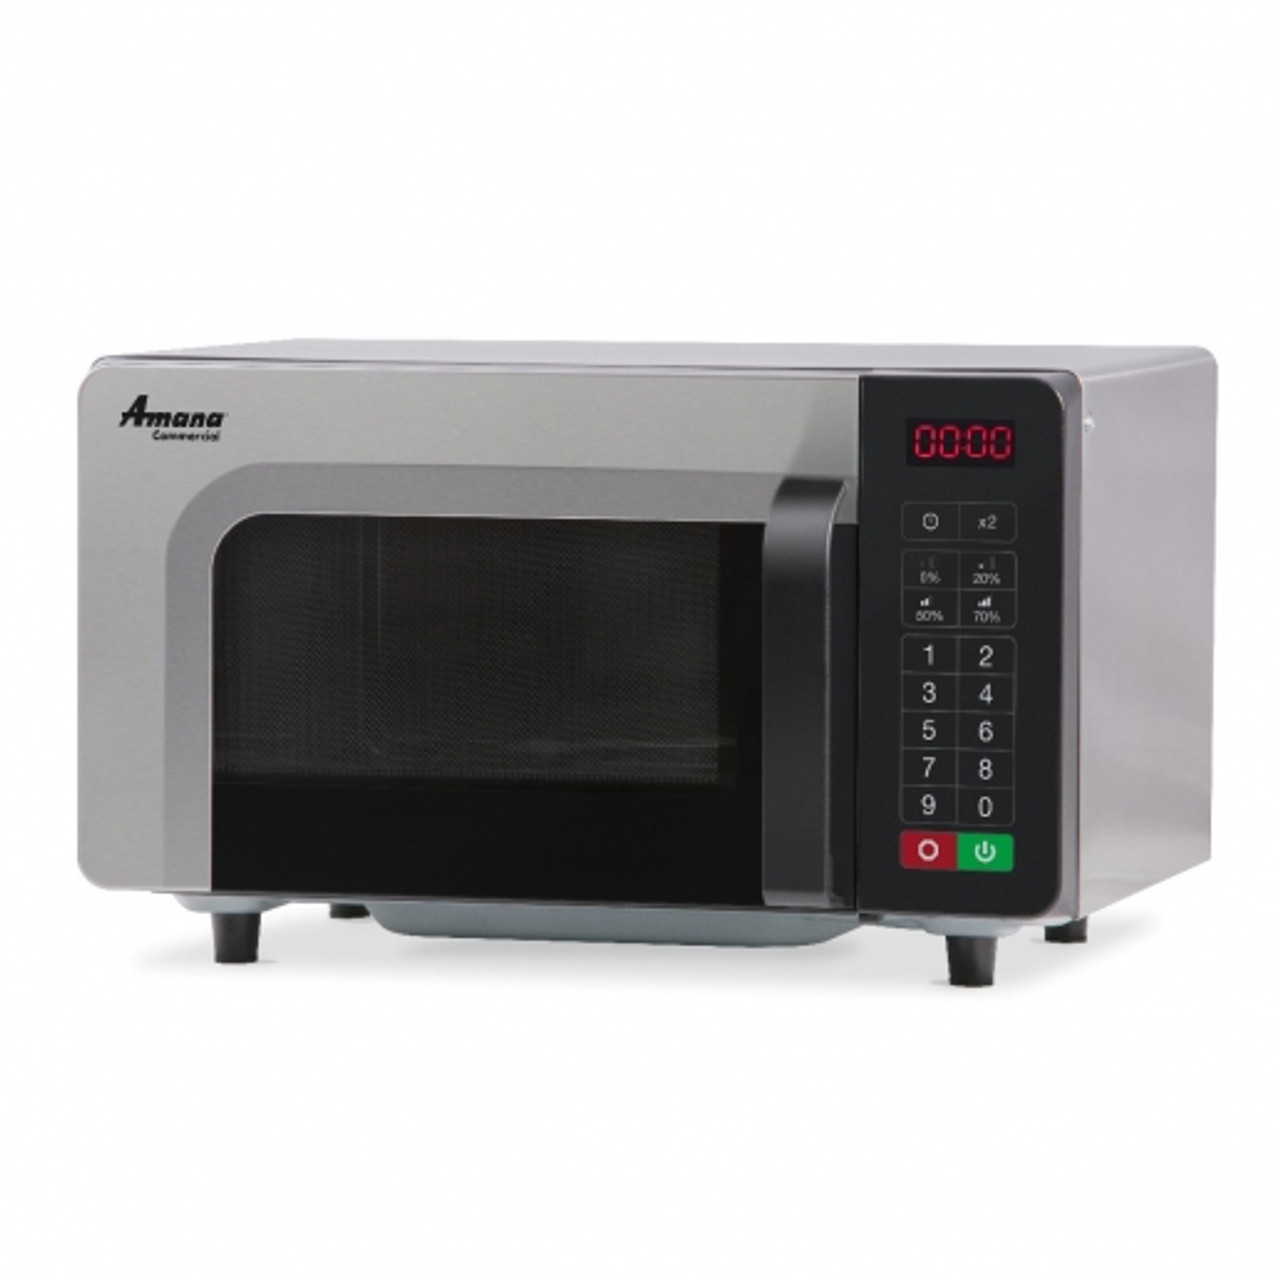 Amana RMS10TSA Stainless Steel Commercial Microwave with Touchpad Controls - 120V, 1000W